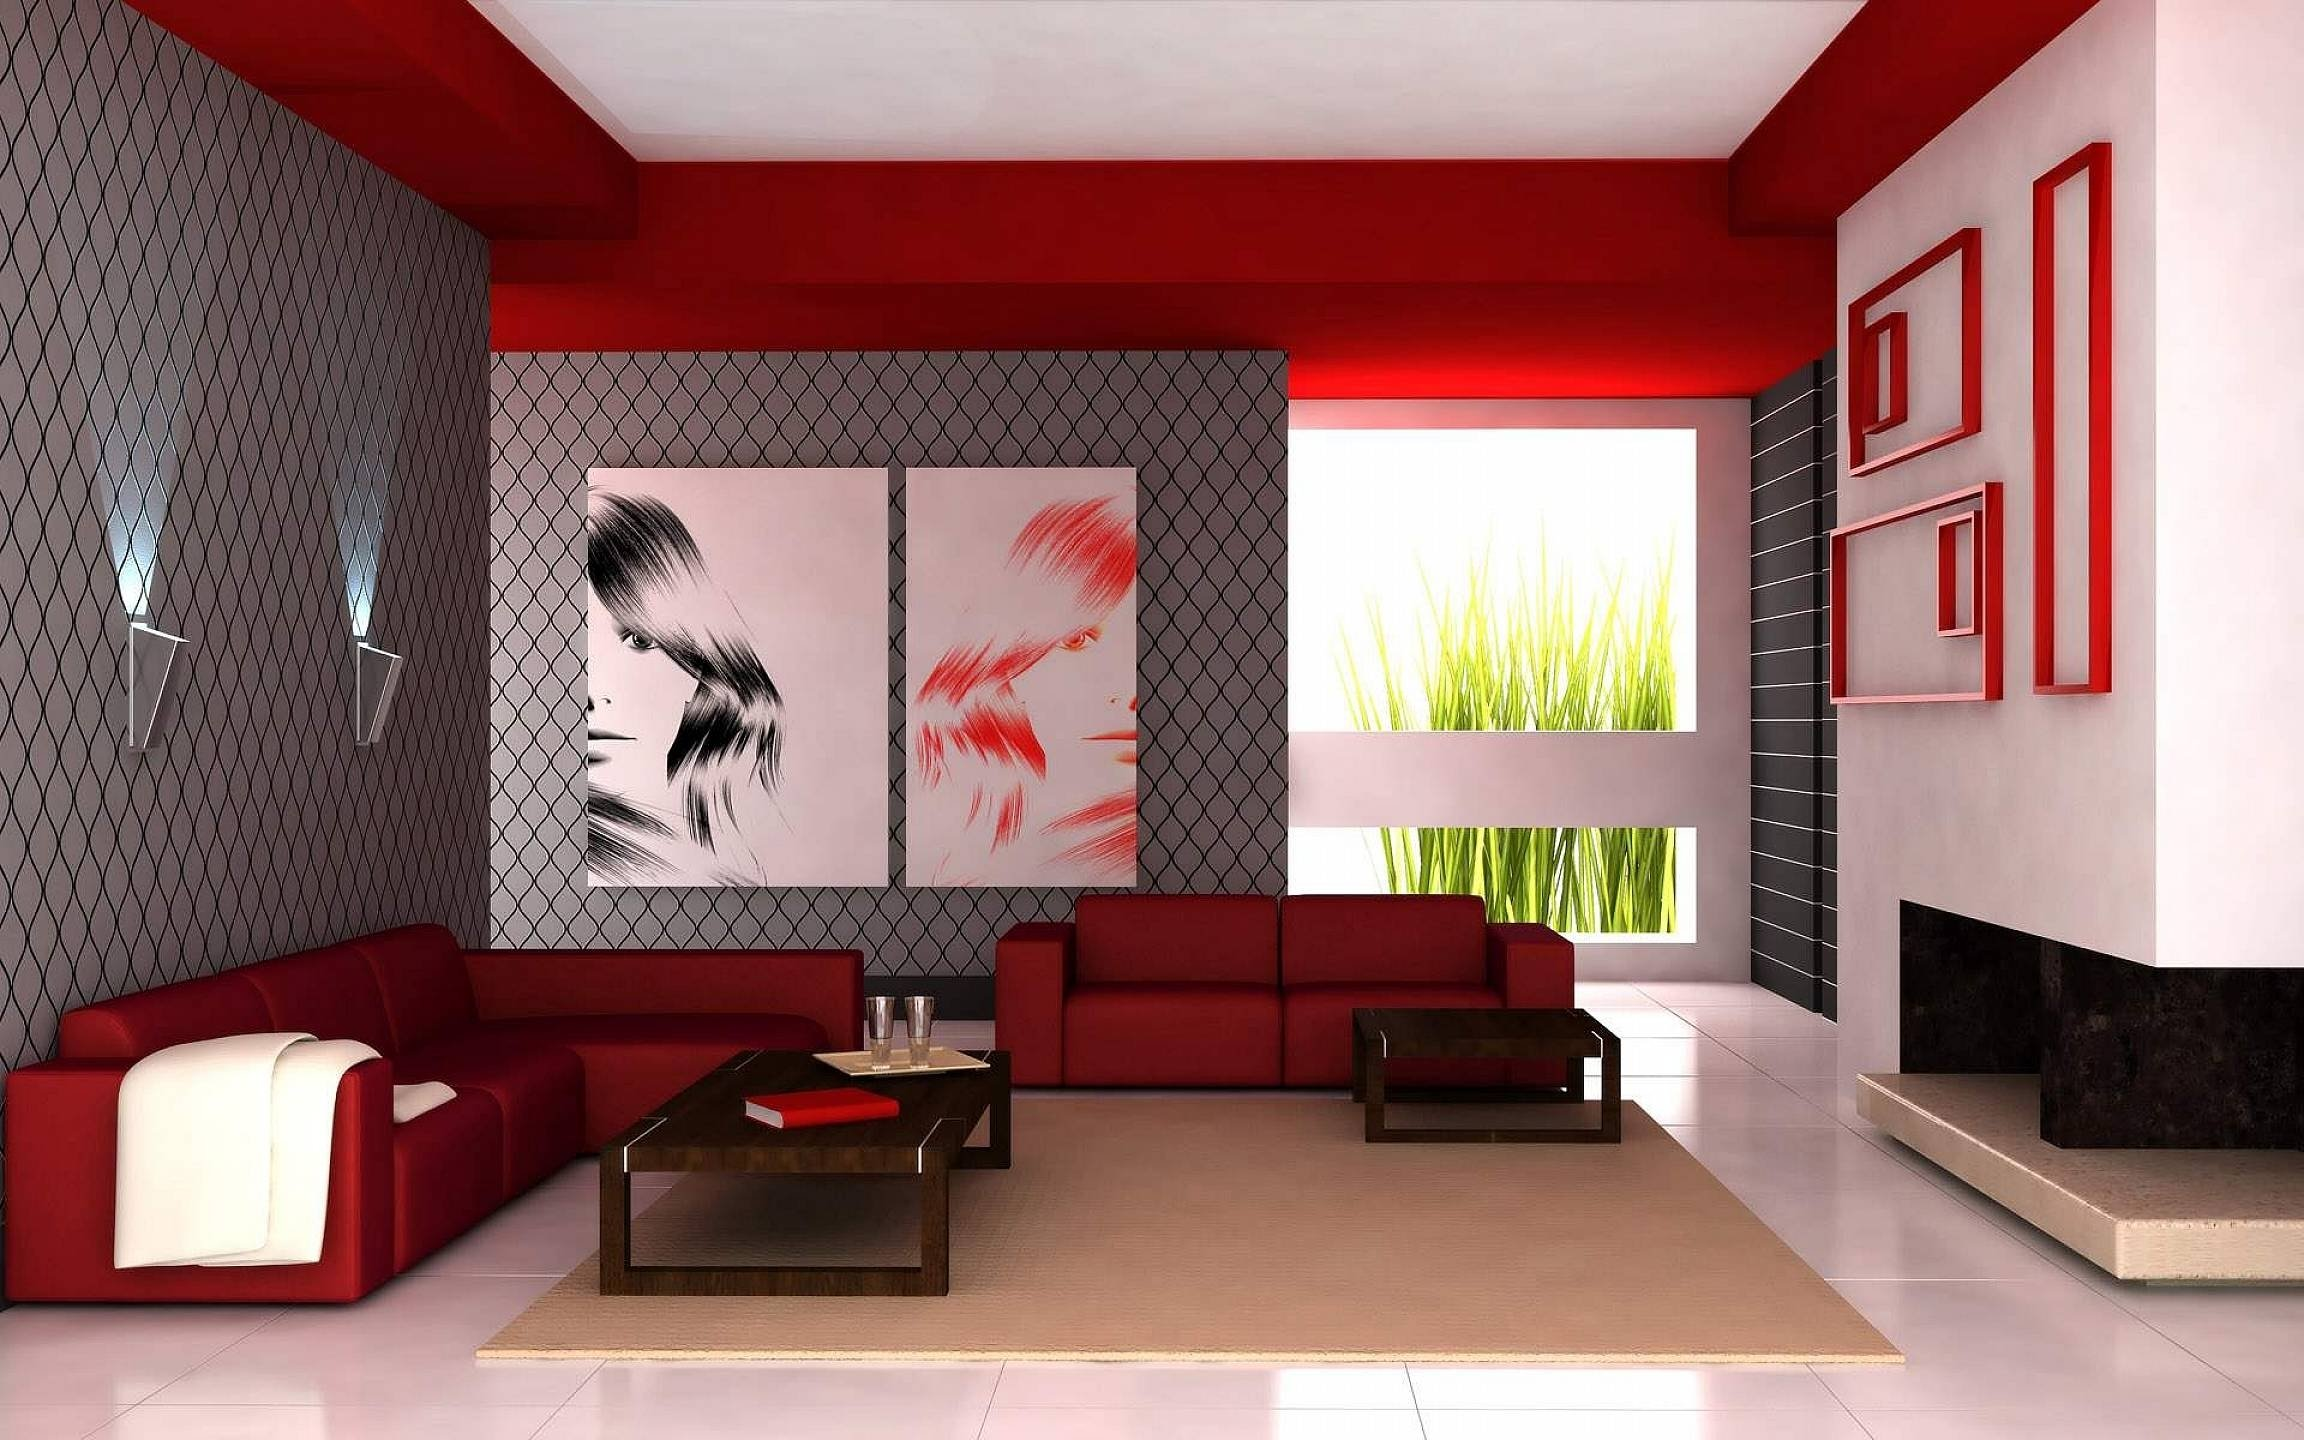 10 Cute Ideas For Painting A Room teens bedroom girl bedroom ideas painting bedding with colorful as 2020